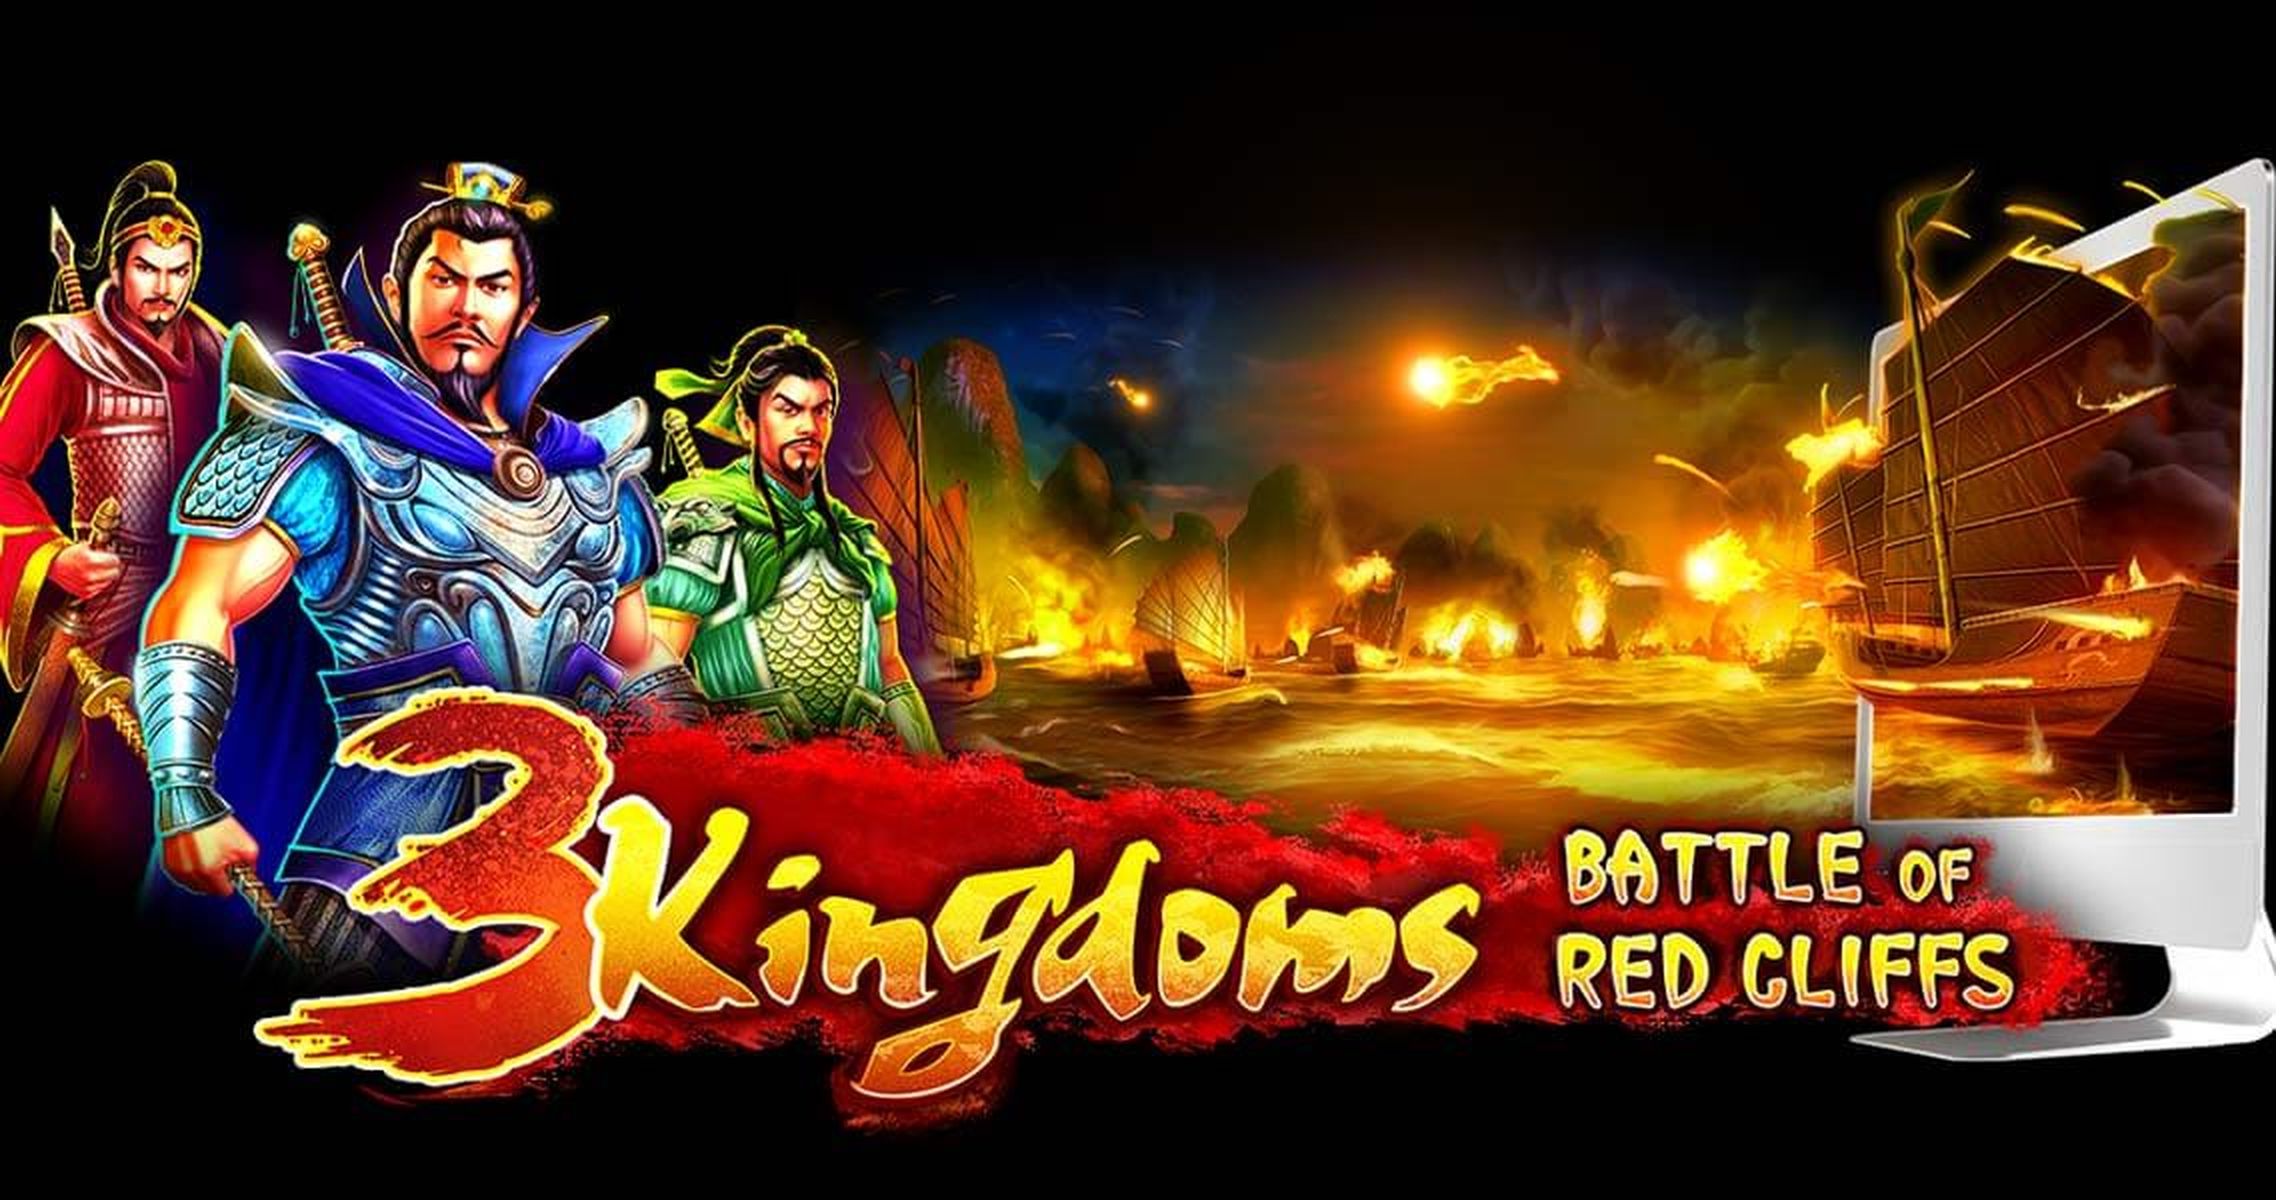 The 3 Kingdoms – Battle of Red Cliffs Online Slot Demo Game by Pragmatic Play